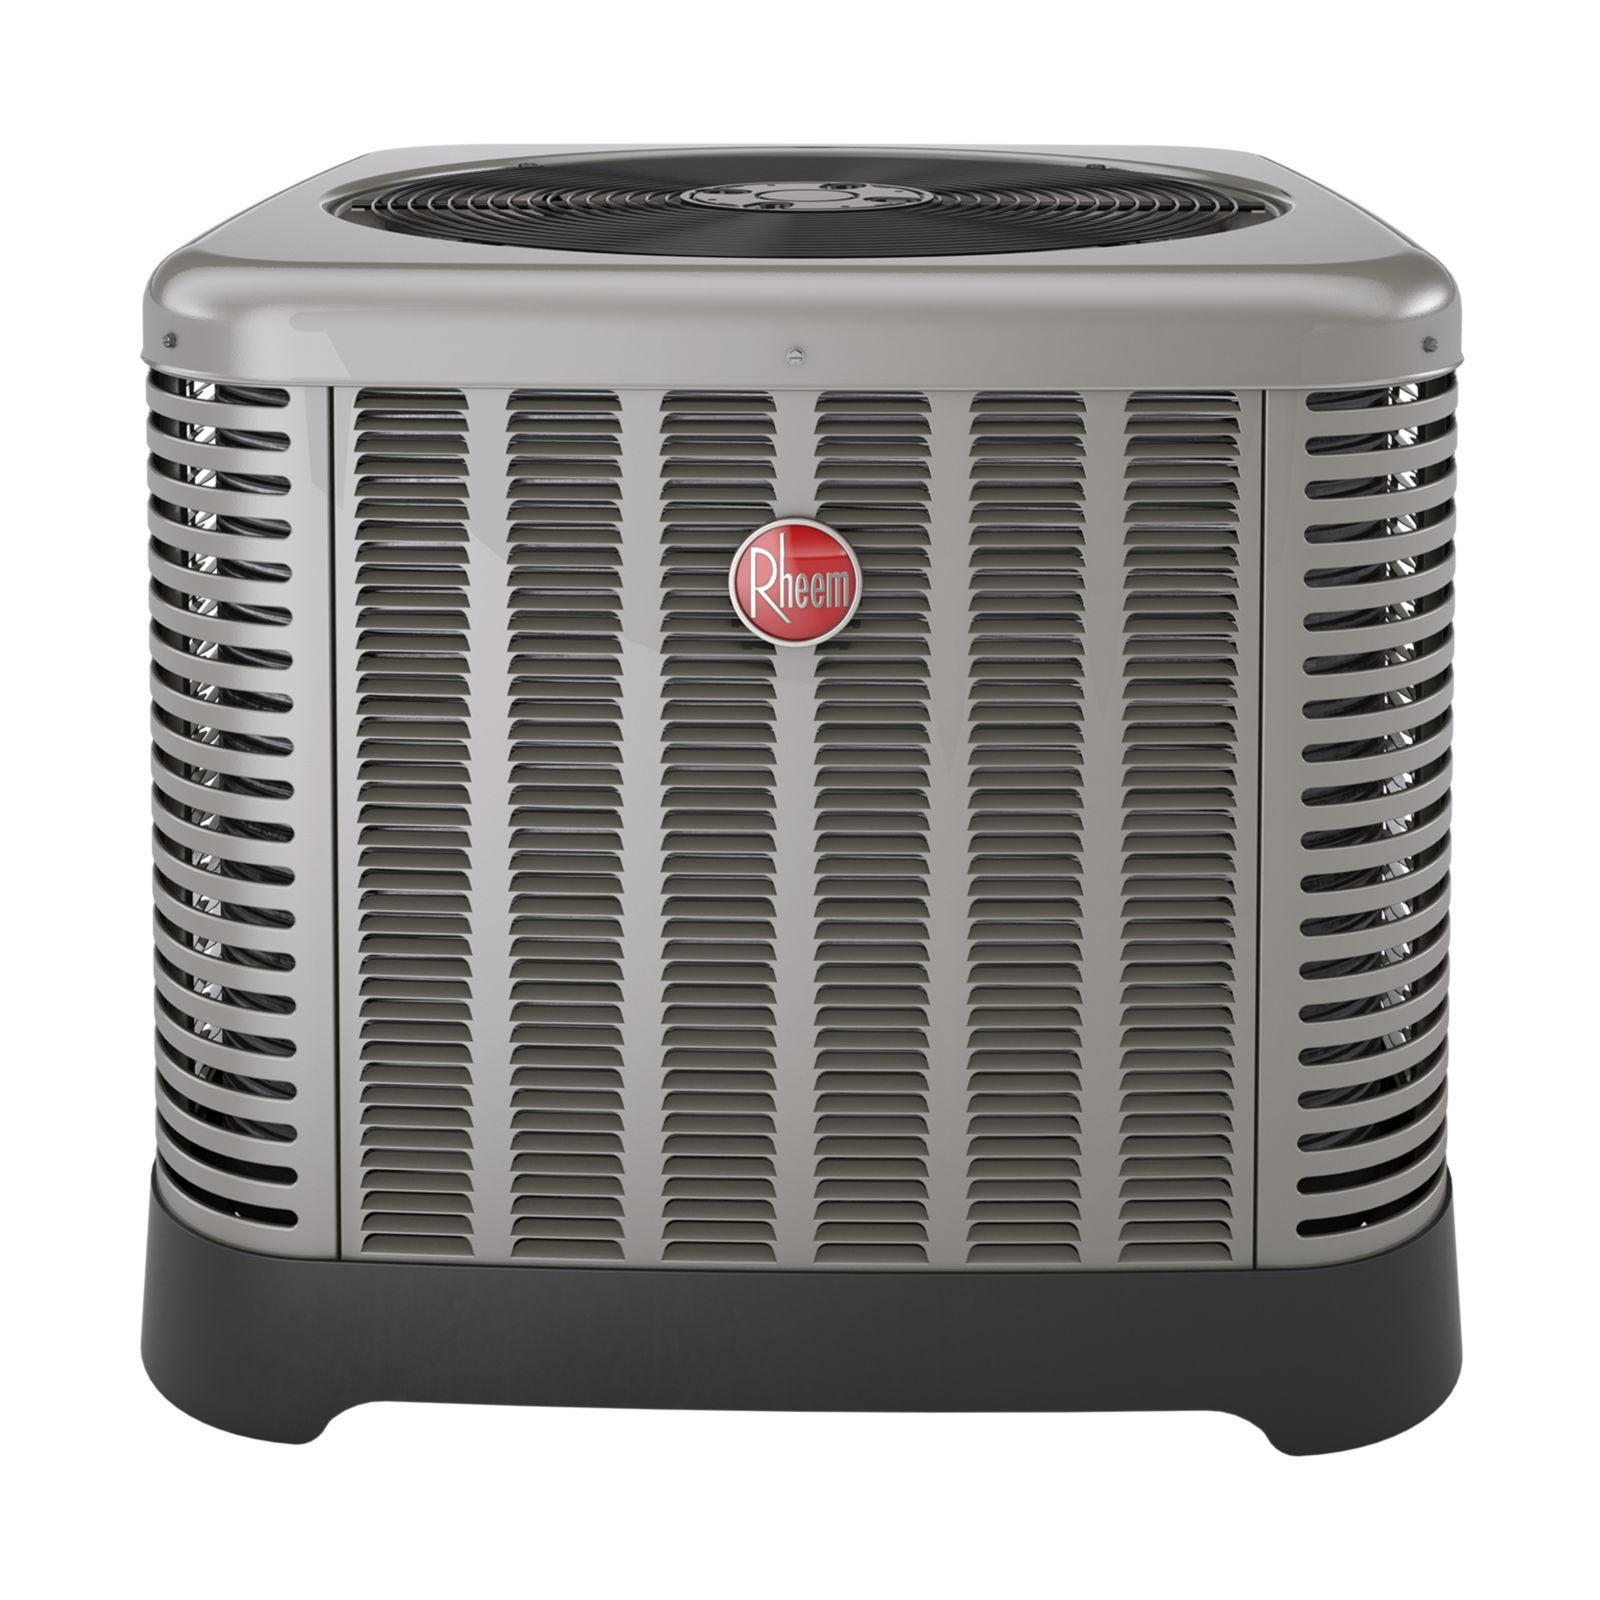 Rheem RP1530BJ1NA -  2 1/2 Ton Classic Series Heat Pump 15 SEER Single Stage Heat Pump 208/230 Volt Single Phase 60 Hz